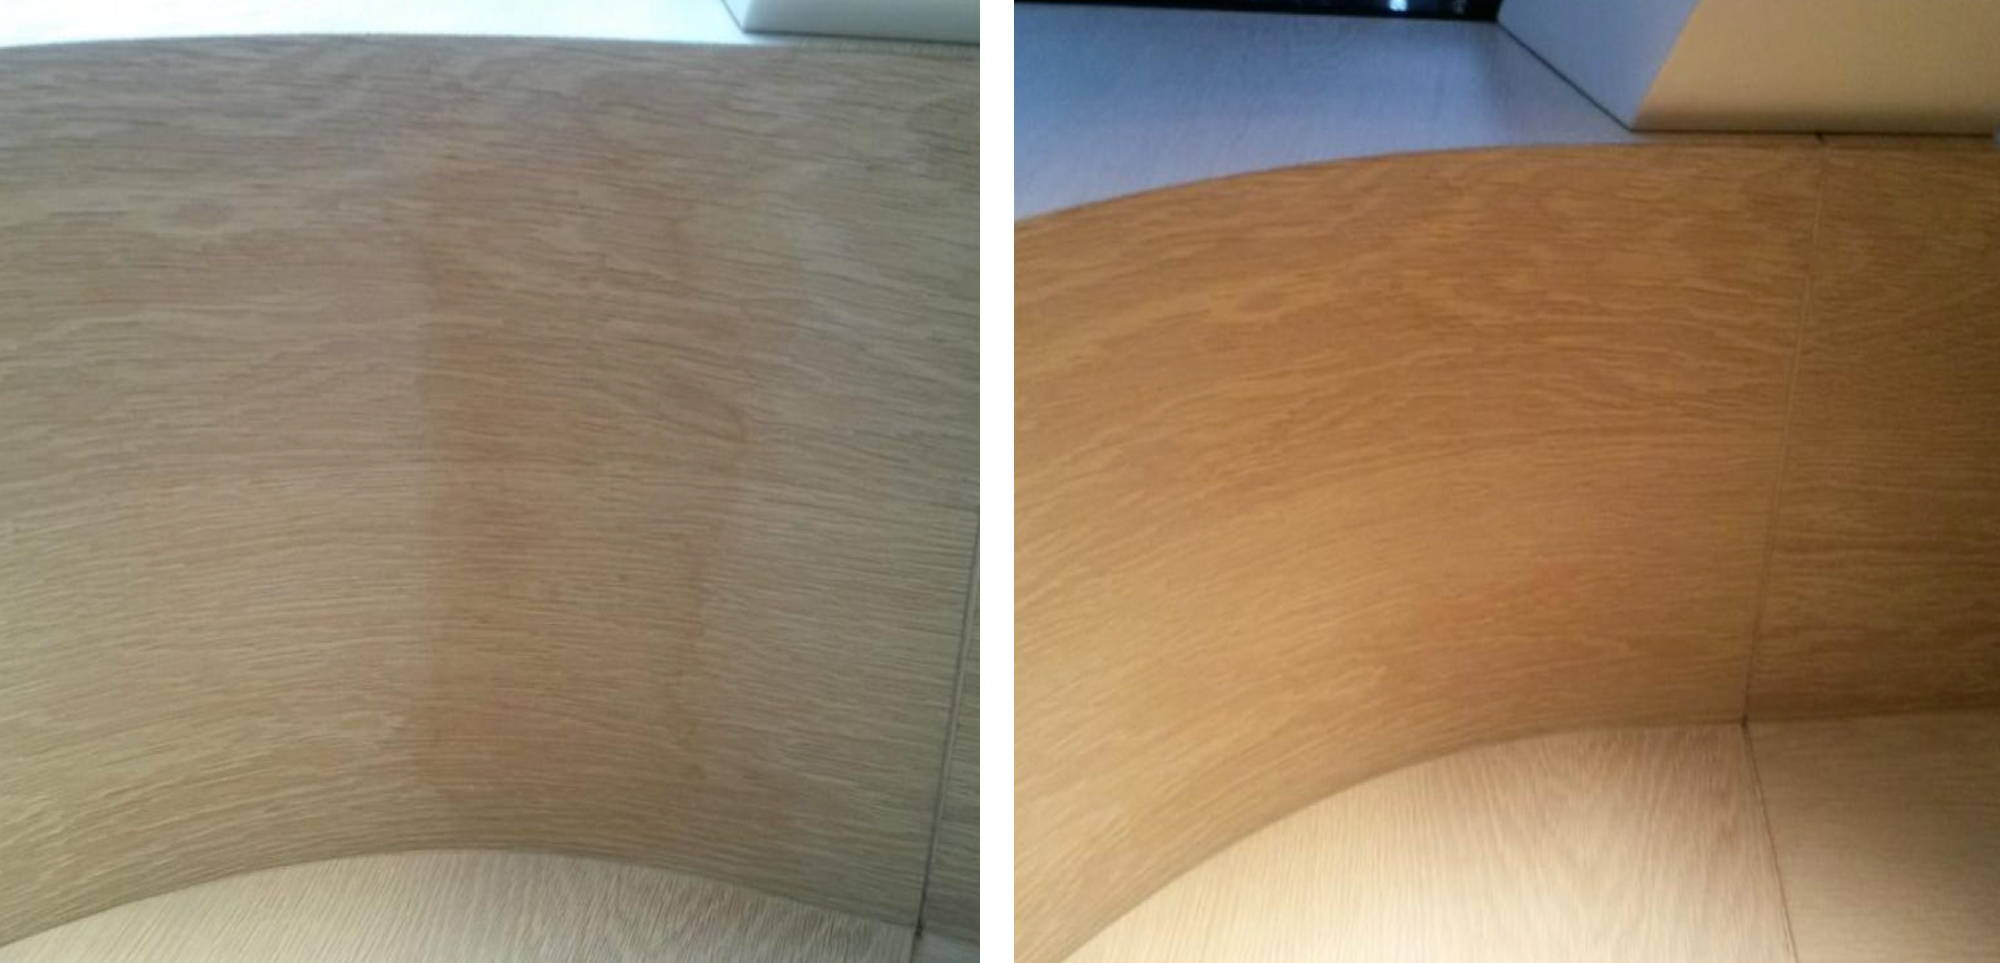 Before and after image of water stains removed from a yacht's wood interior